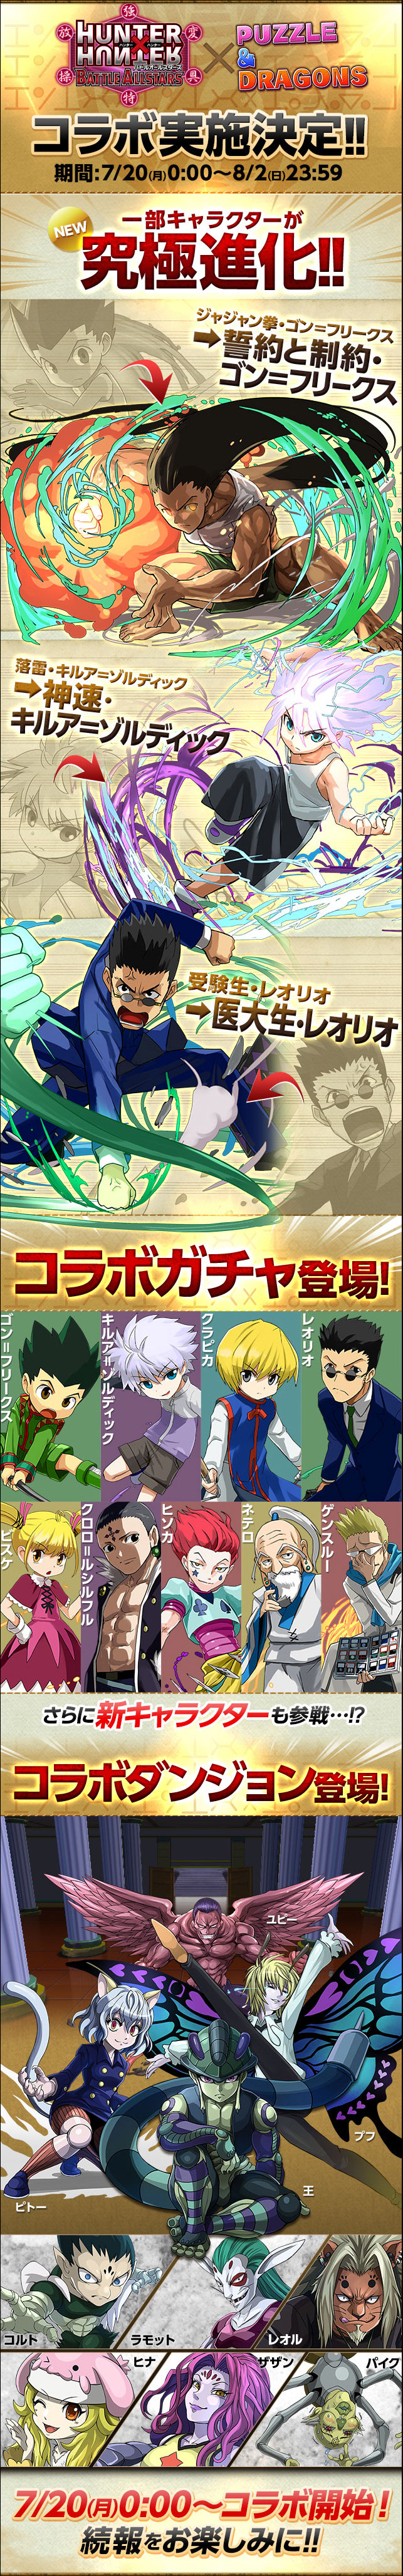 Hunter x Hunter Smartphone Game Teams up with Puzzle & Dragons